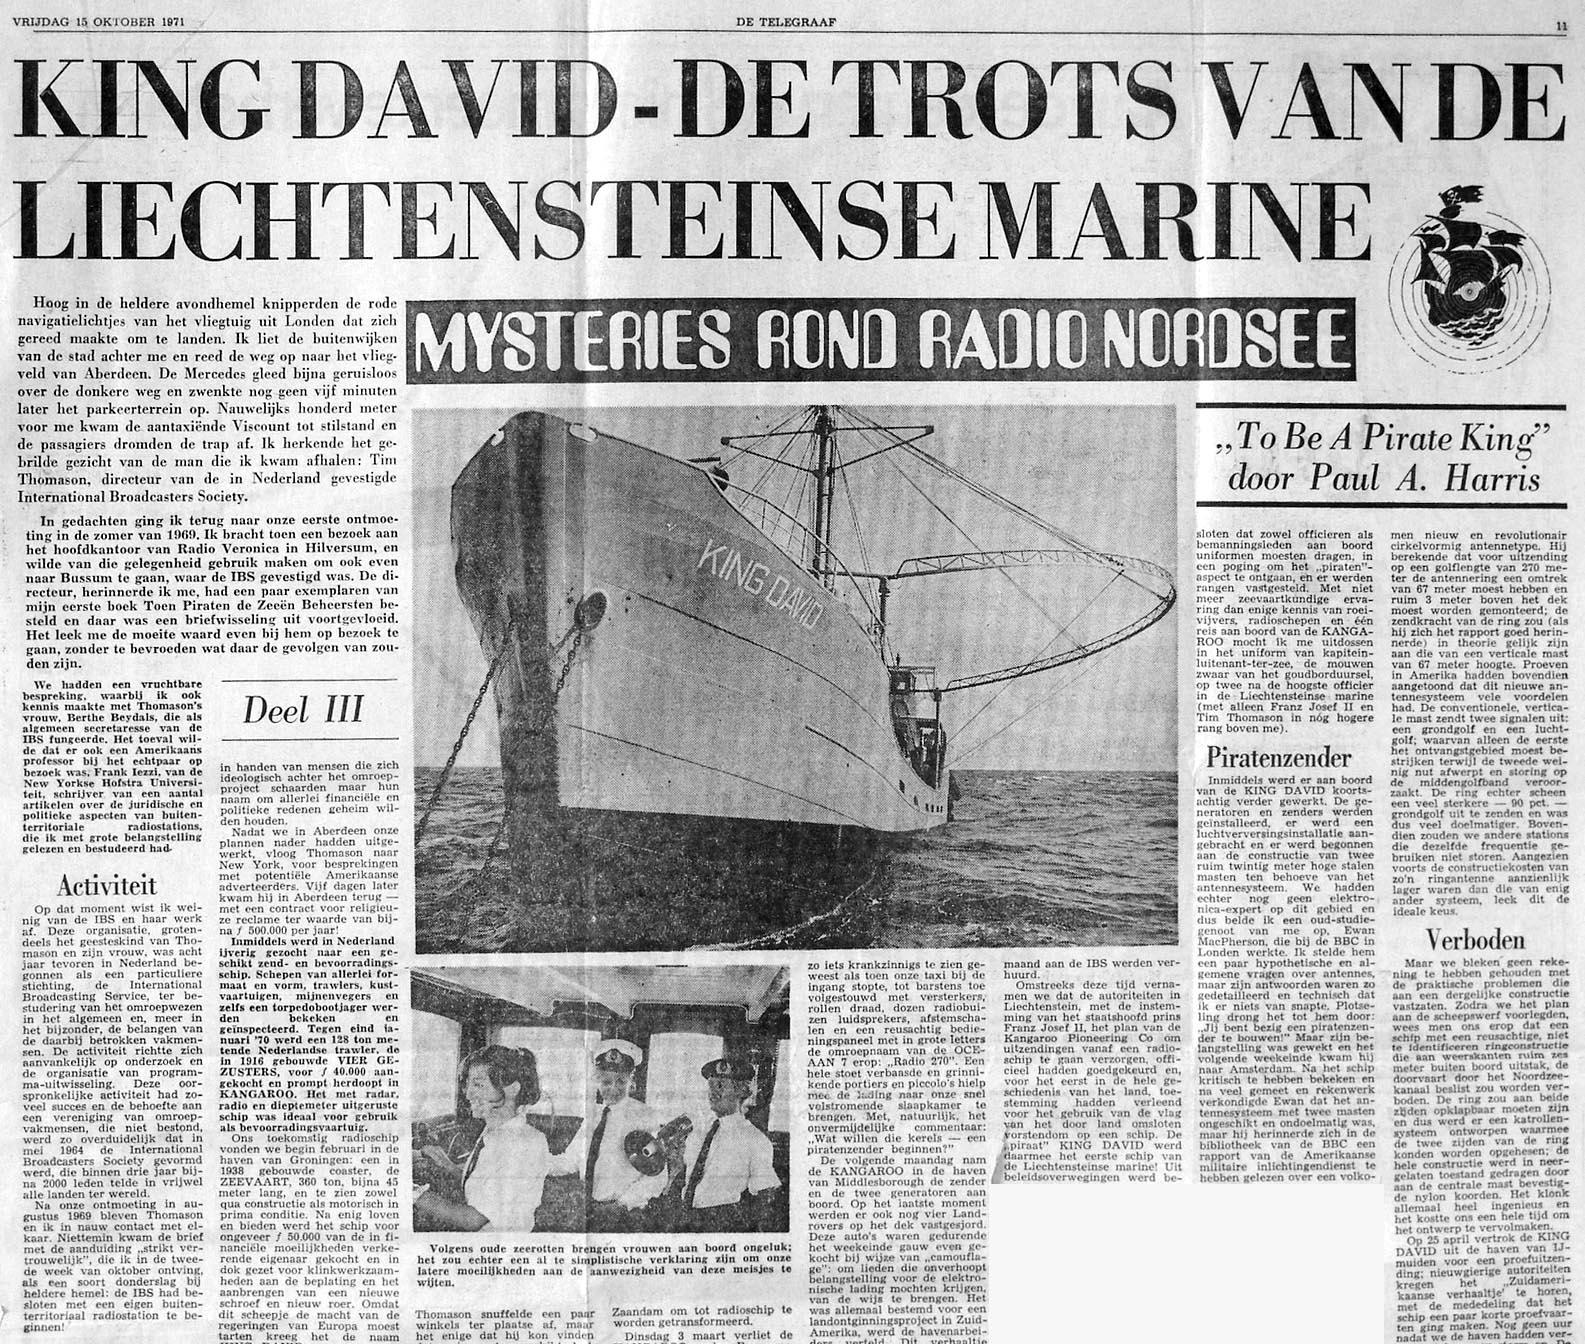 1971-10-15 Telegraaf King David Liechtenstein trots02.jpg